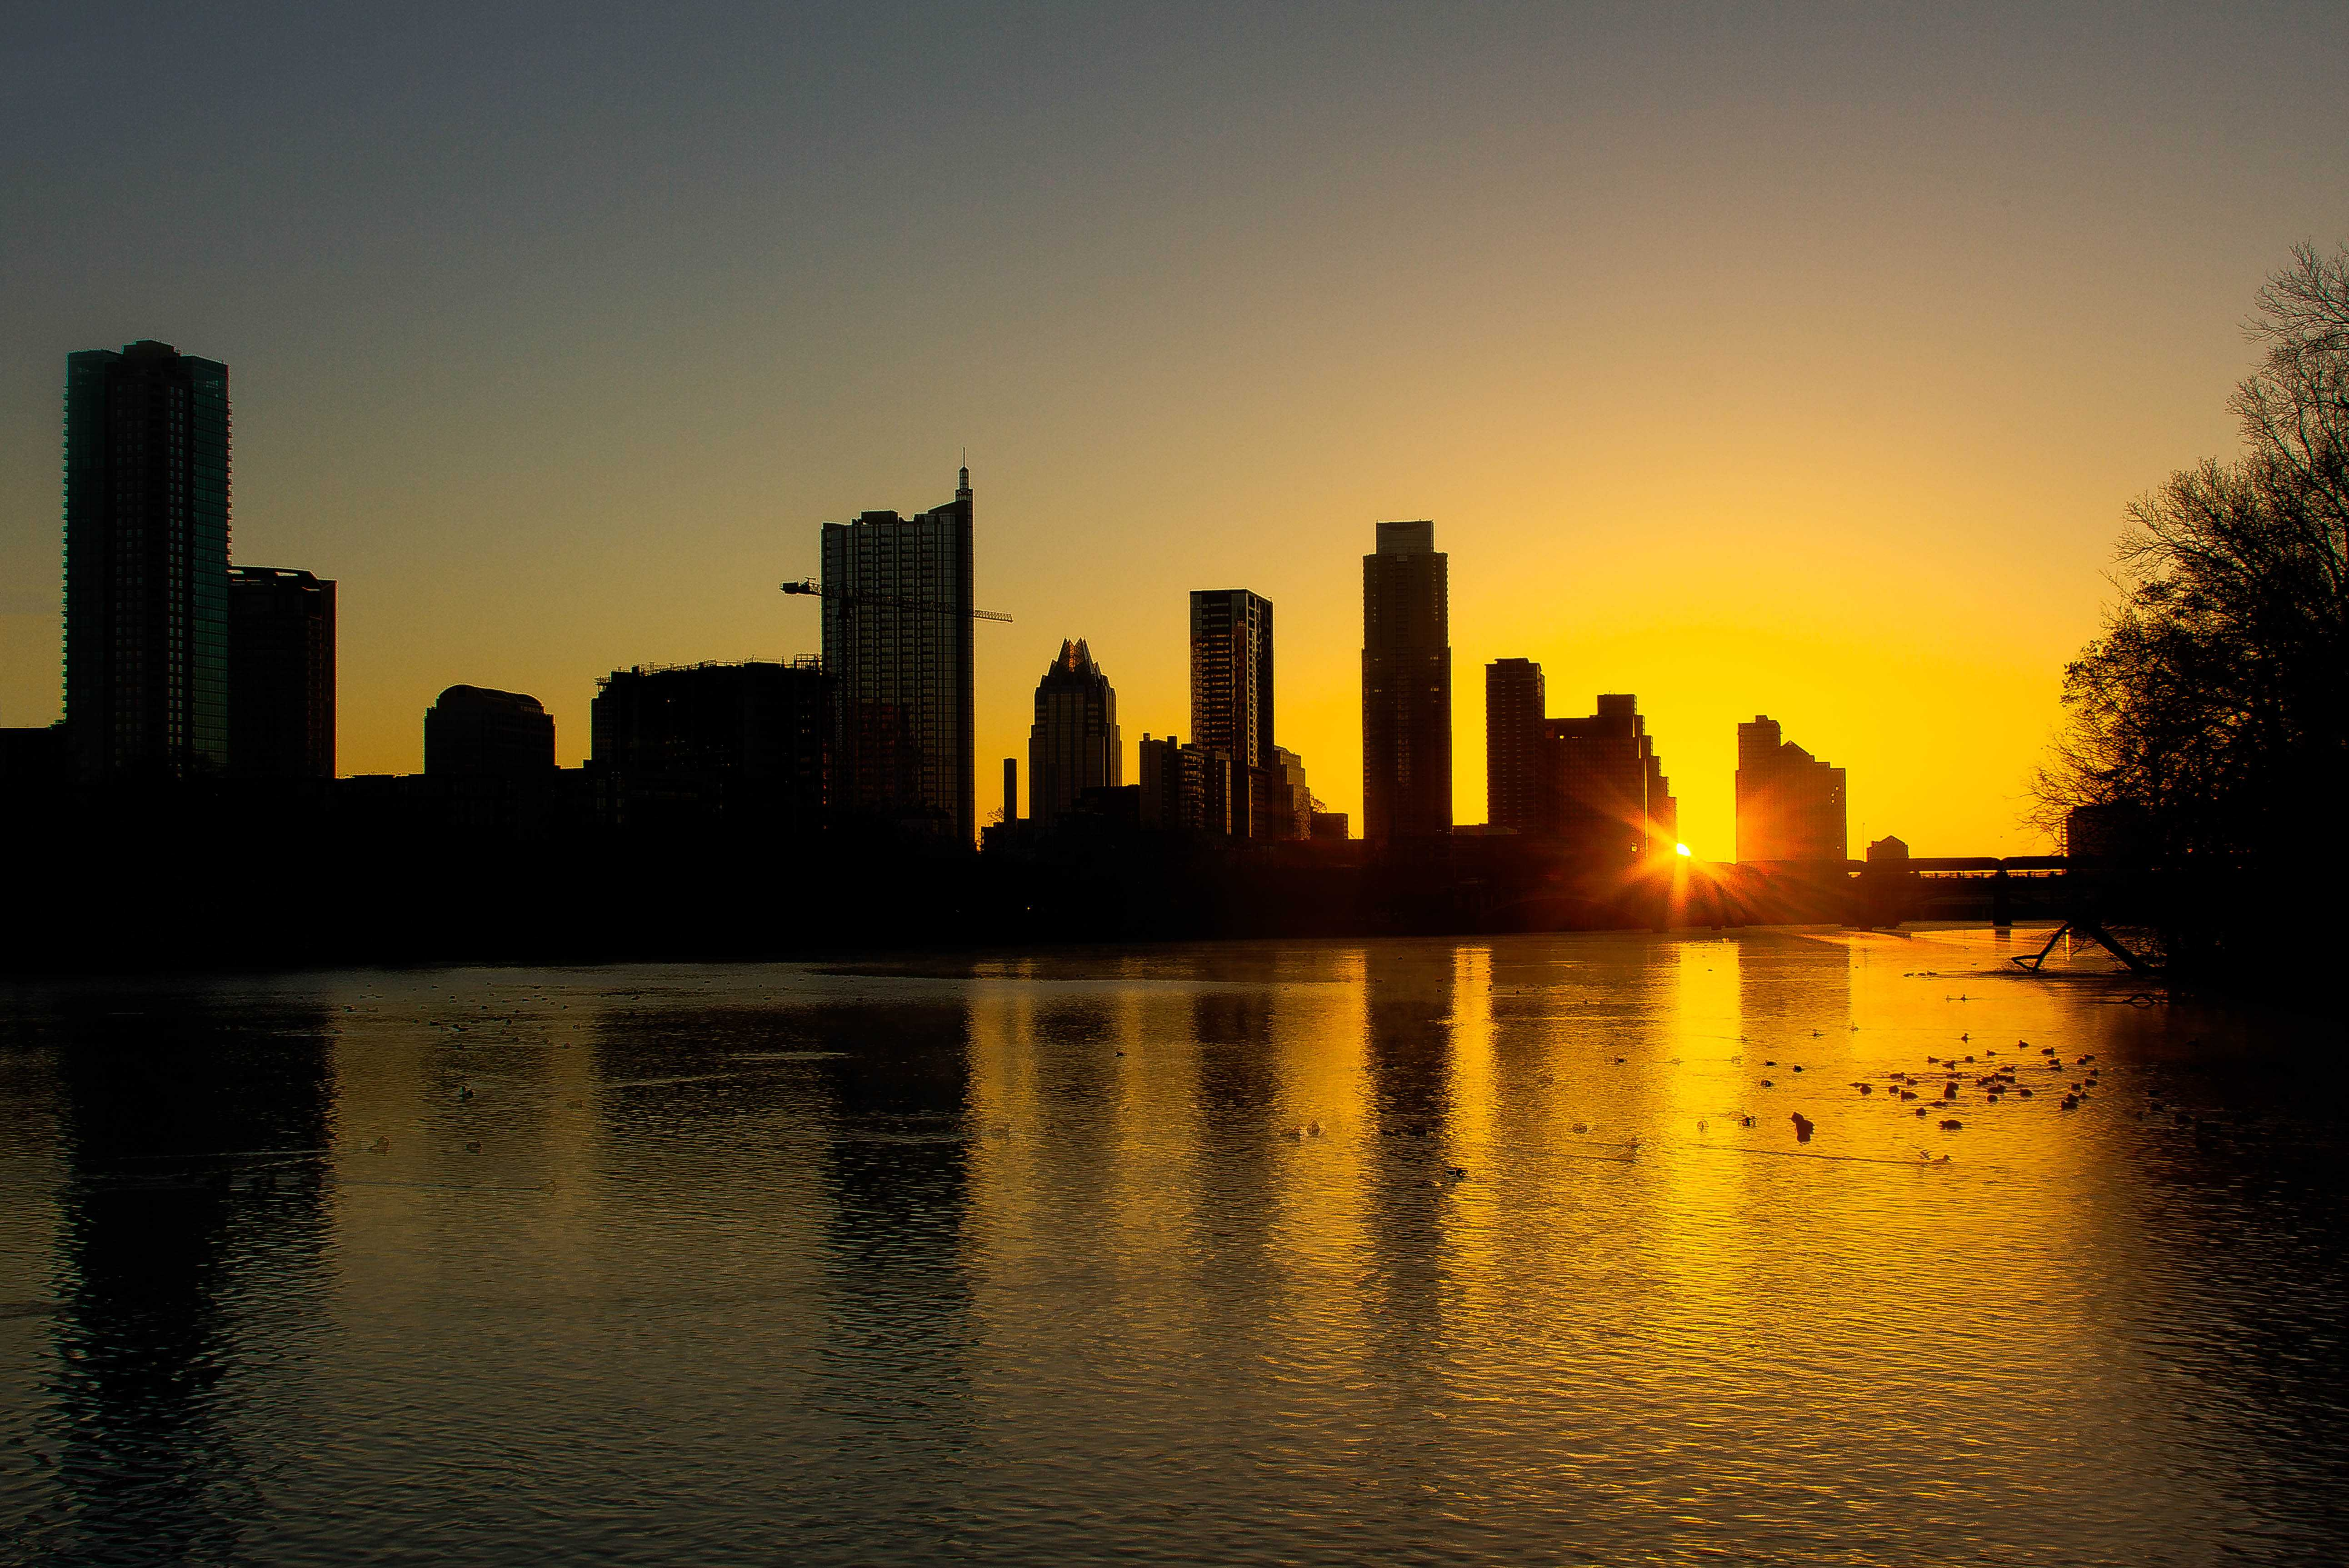 The sun rising over the Wells Fargo building in Austin, TX in February 2013